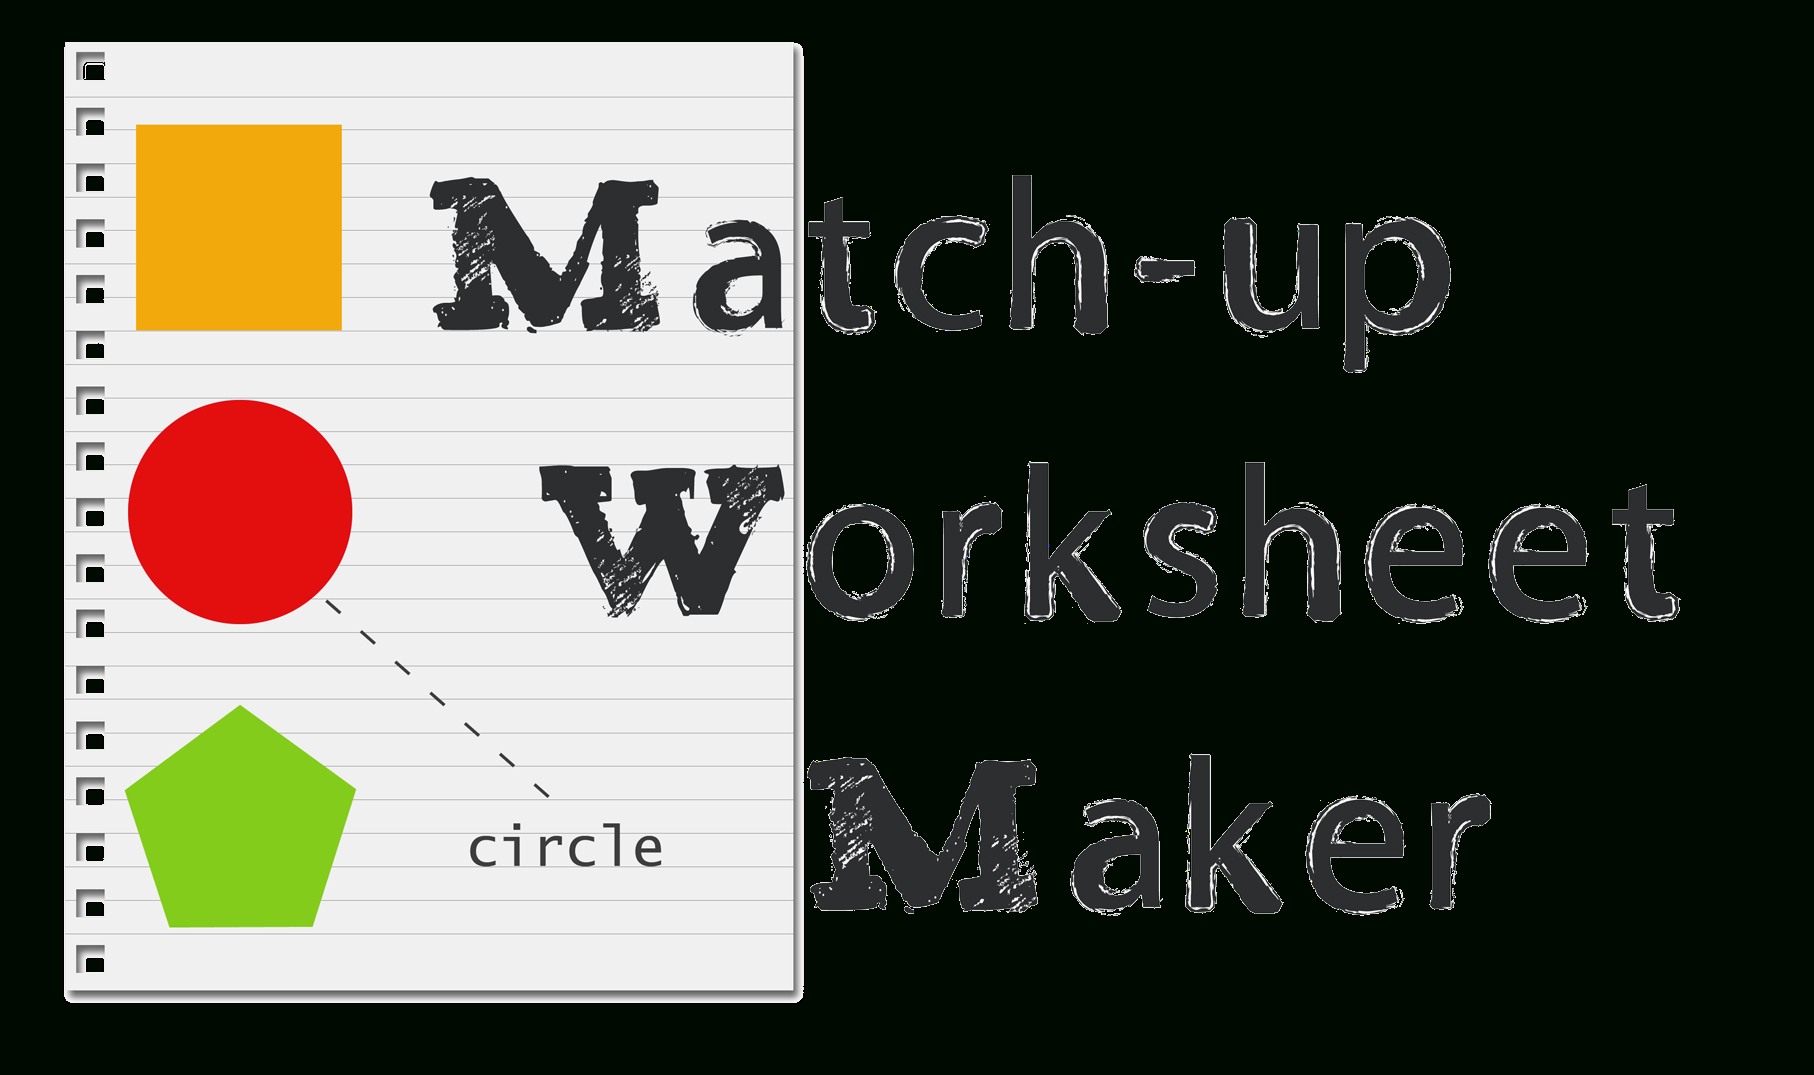 Matching Worksheet Maker: Create Custom Printable Worksheets - Make Your Own Worksheets Free Printable